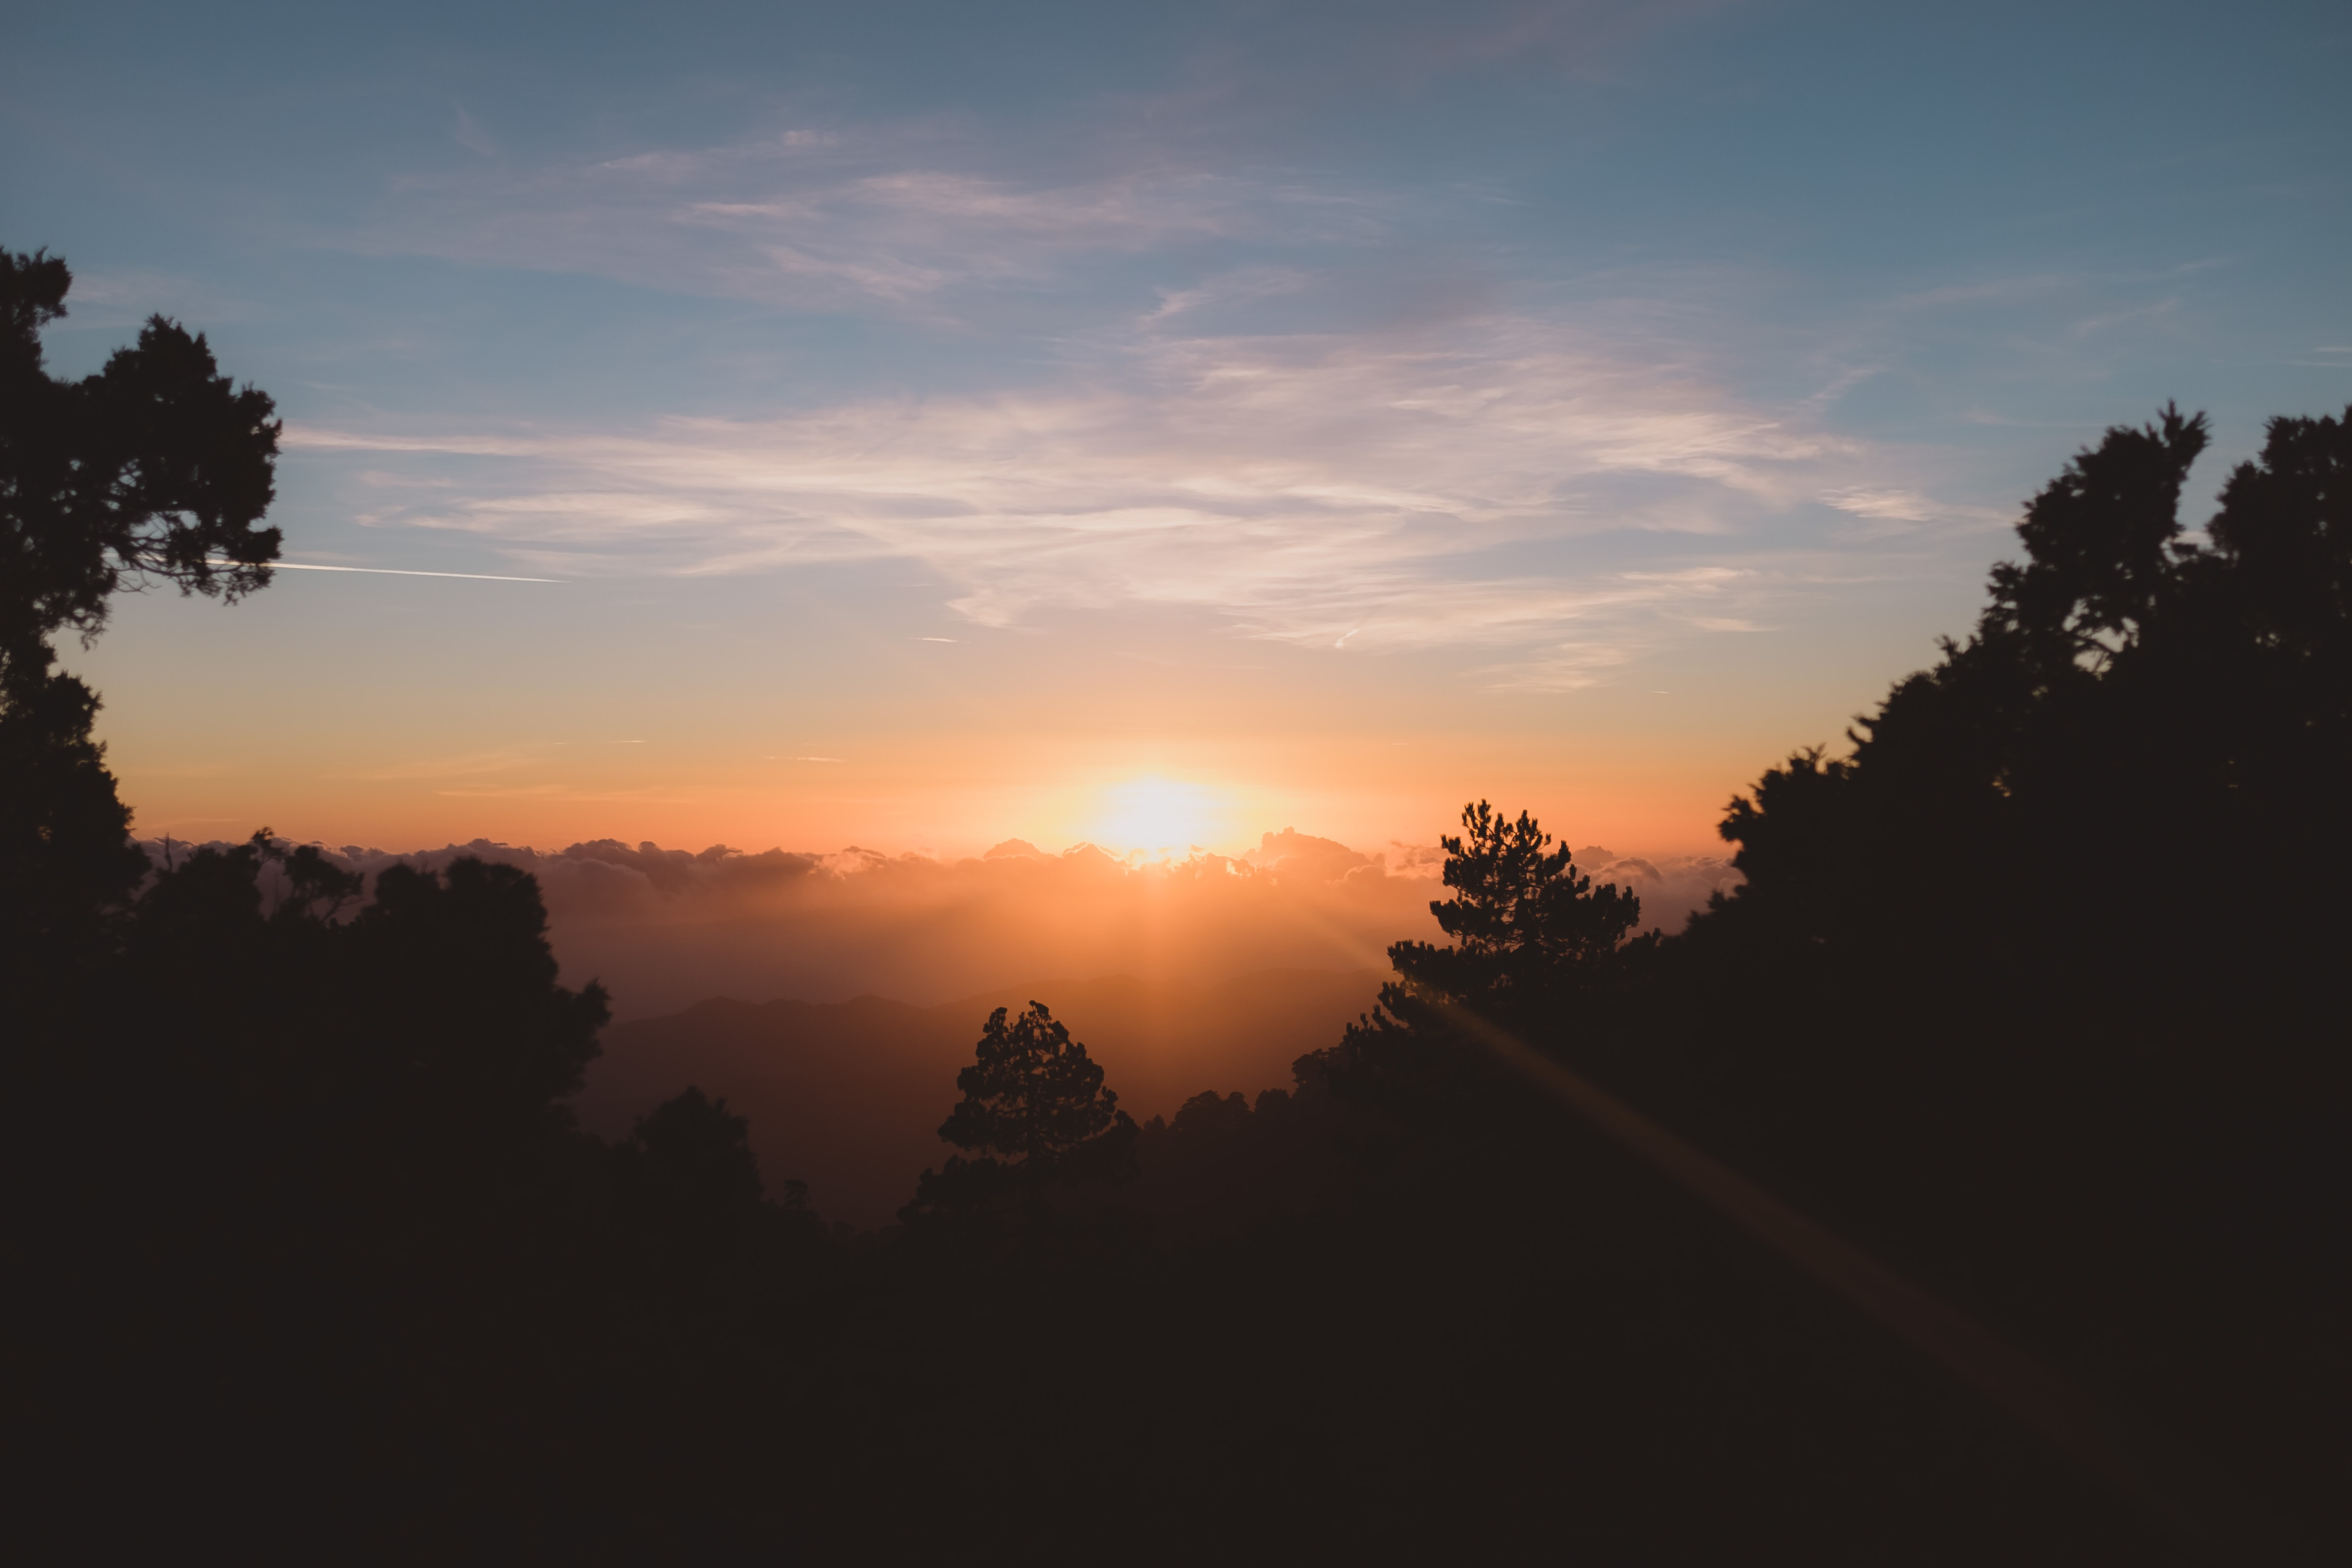 silhouette of trees in front of sunrise